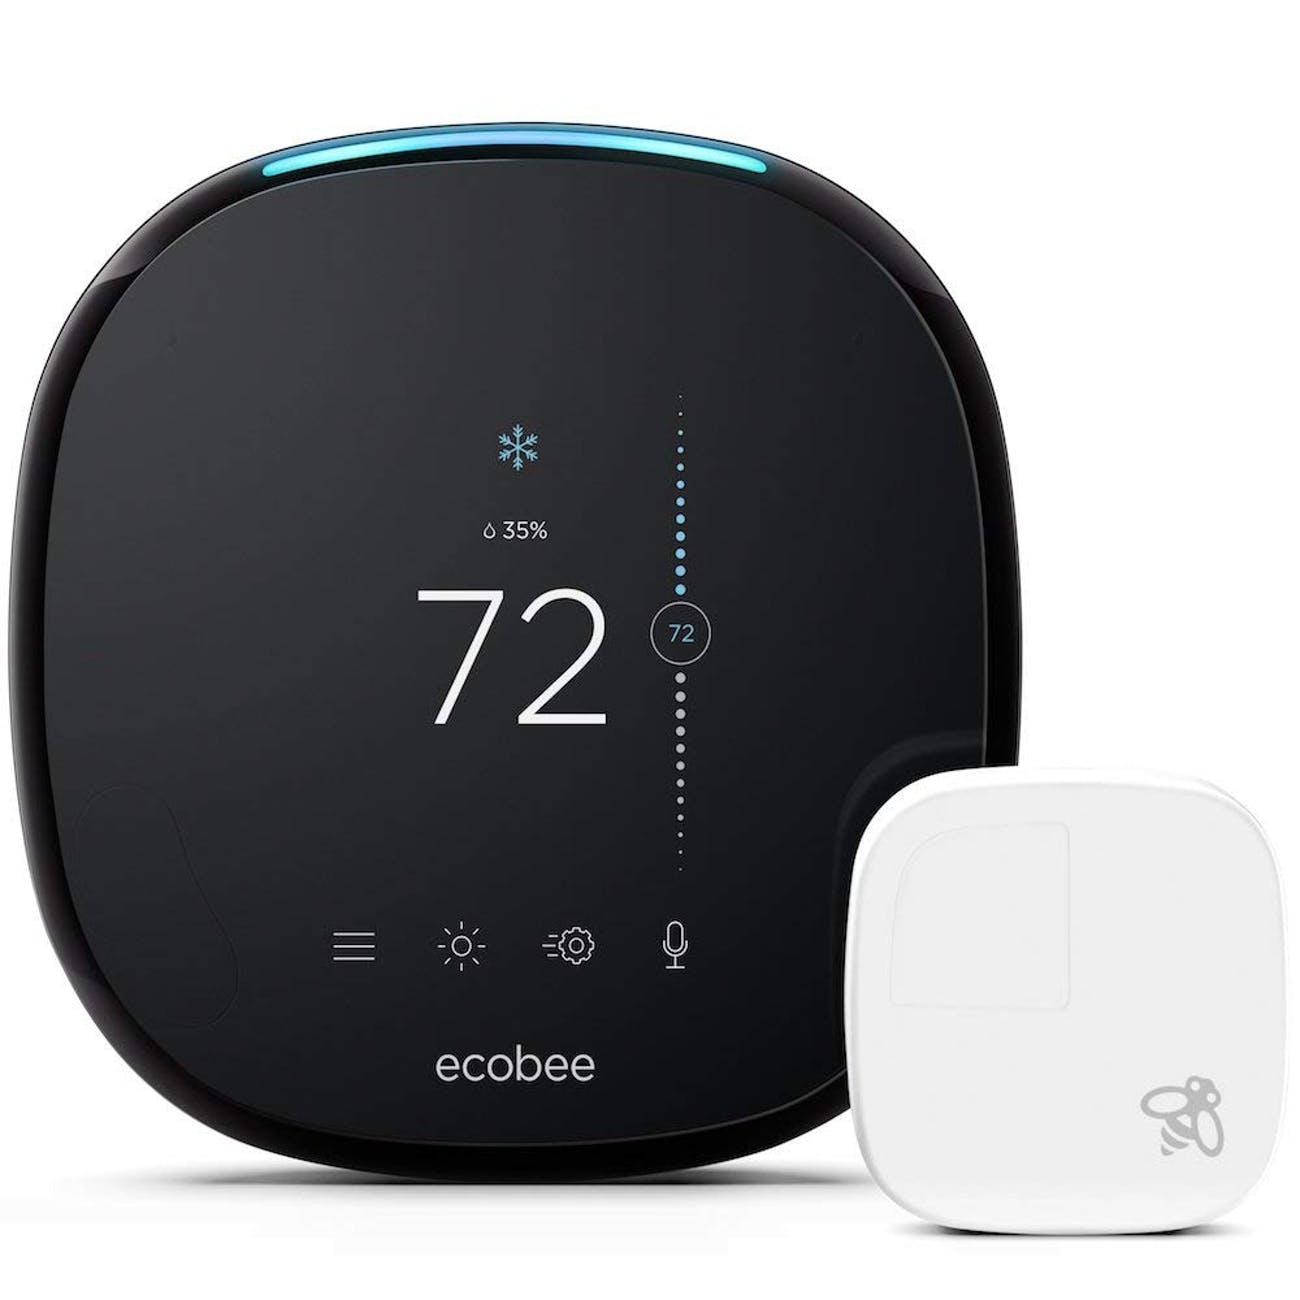 Which Smart Thermostat Is Easiest to Use? | Inverse